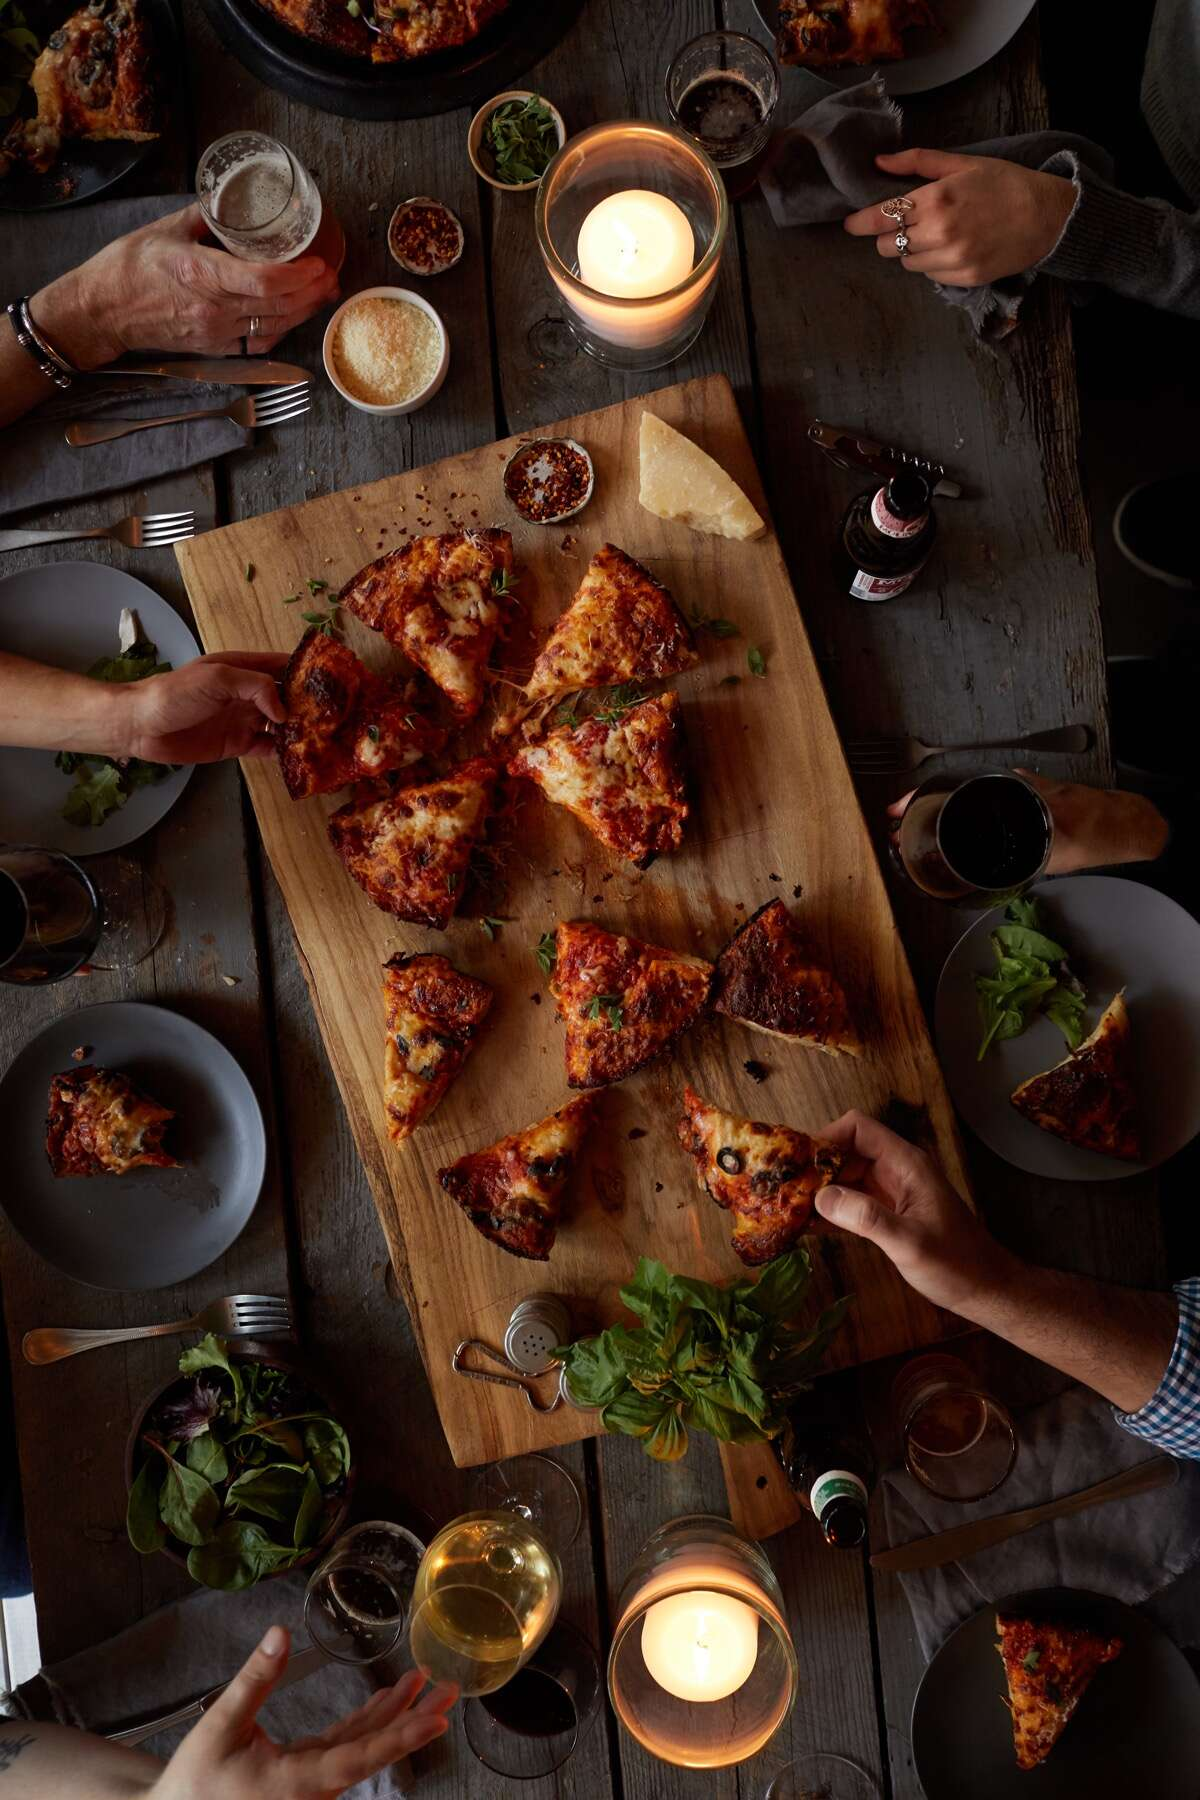 Baked pizza on a cutting board with lit candles, wine, beer, and hands of people sharing.